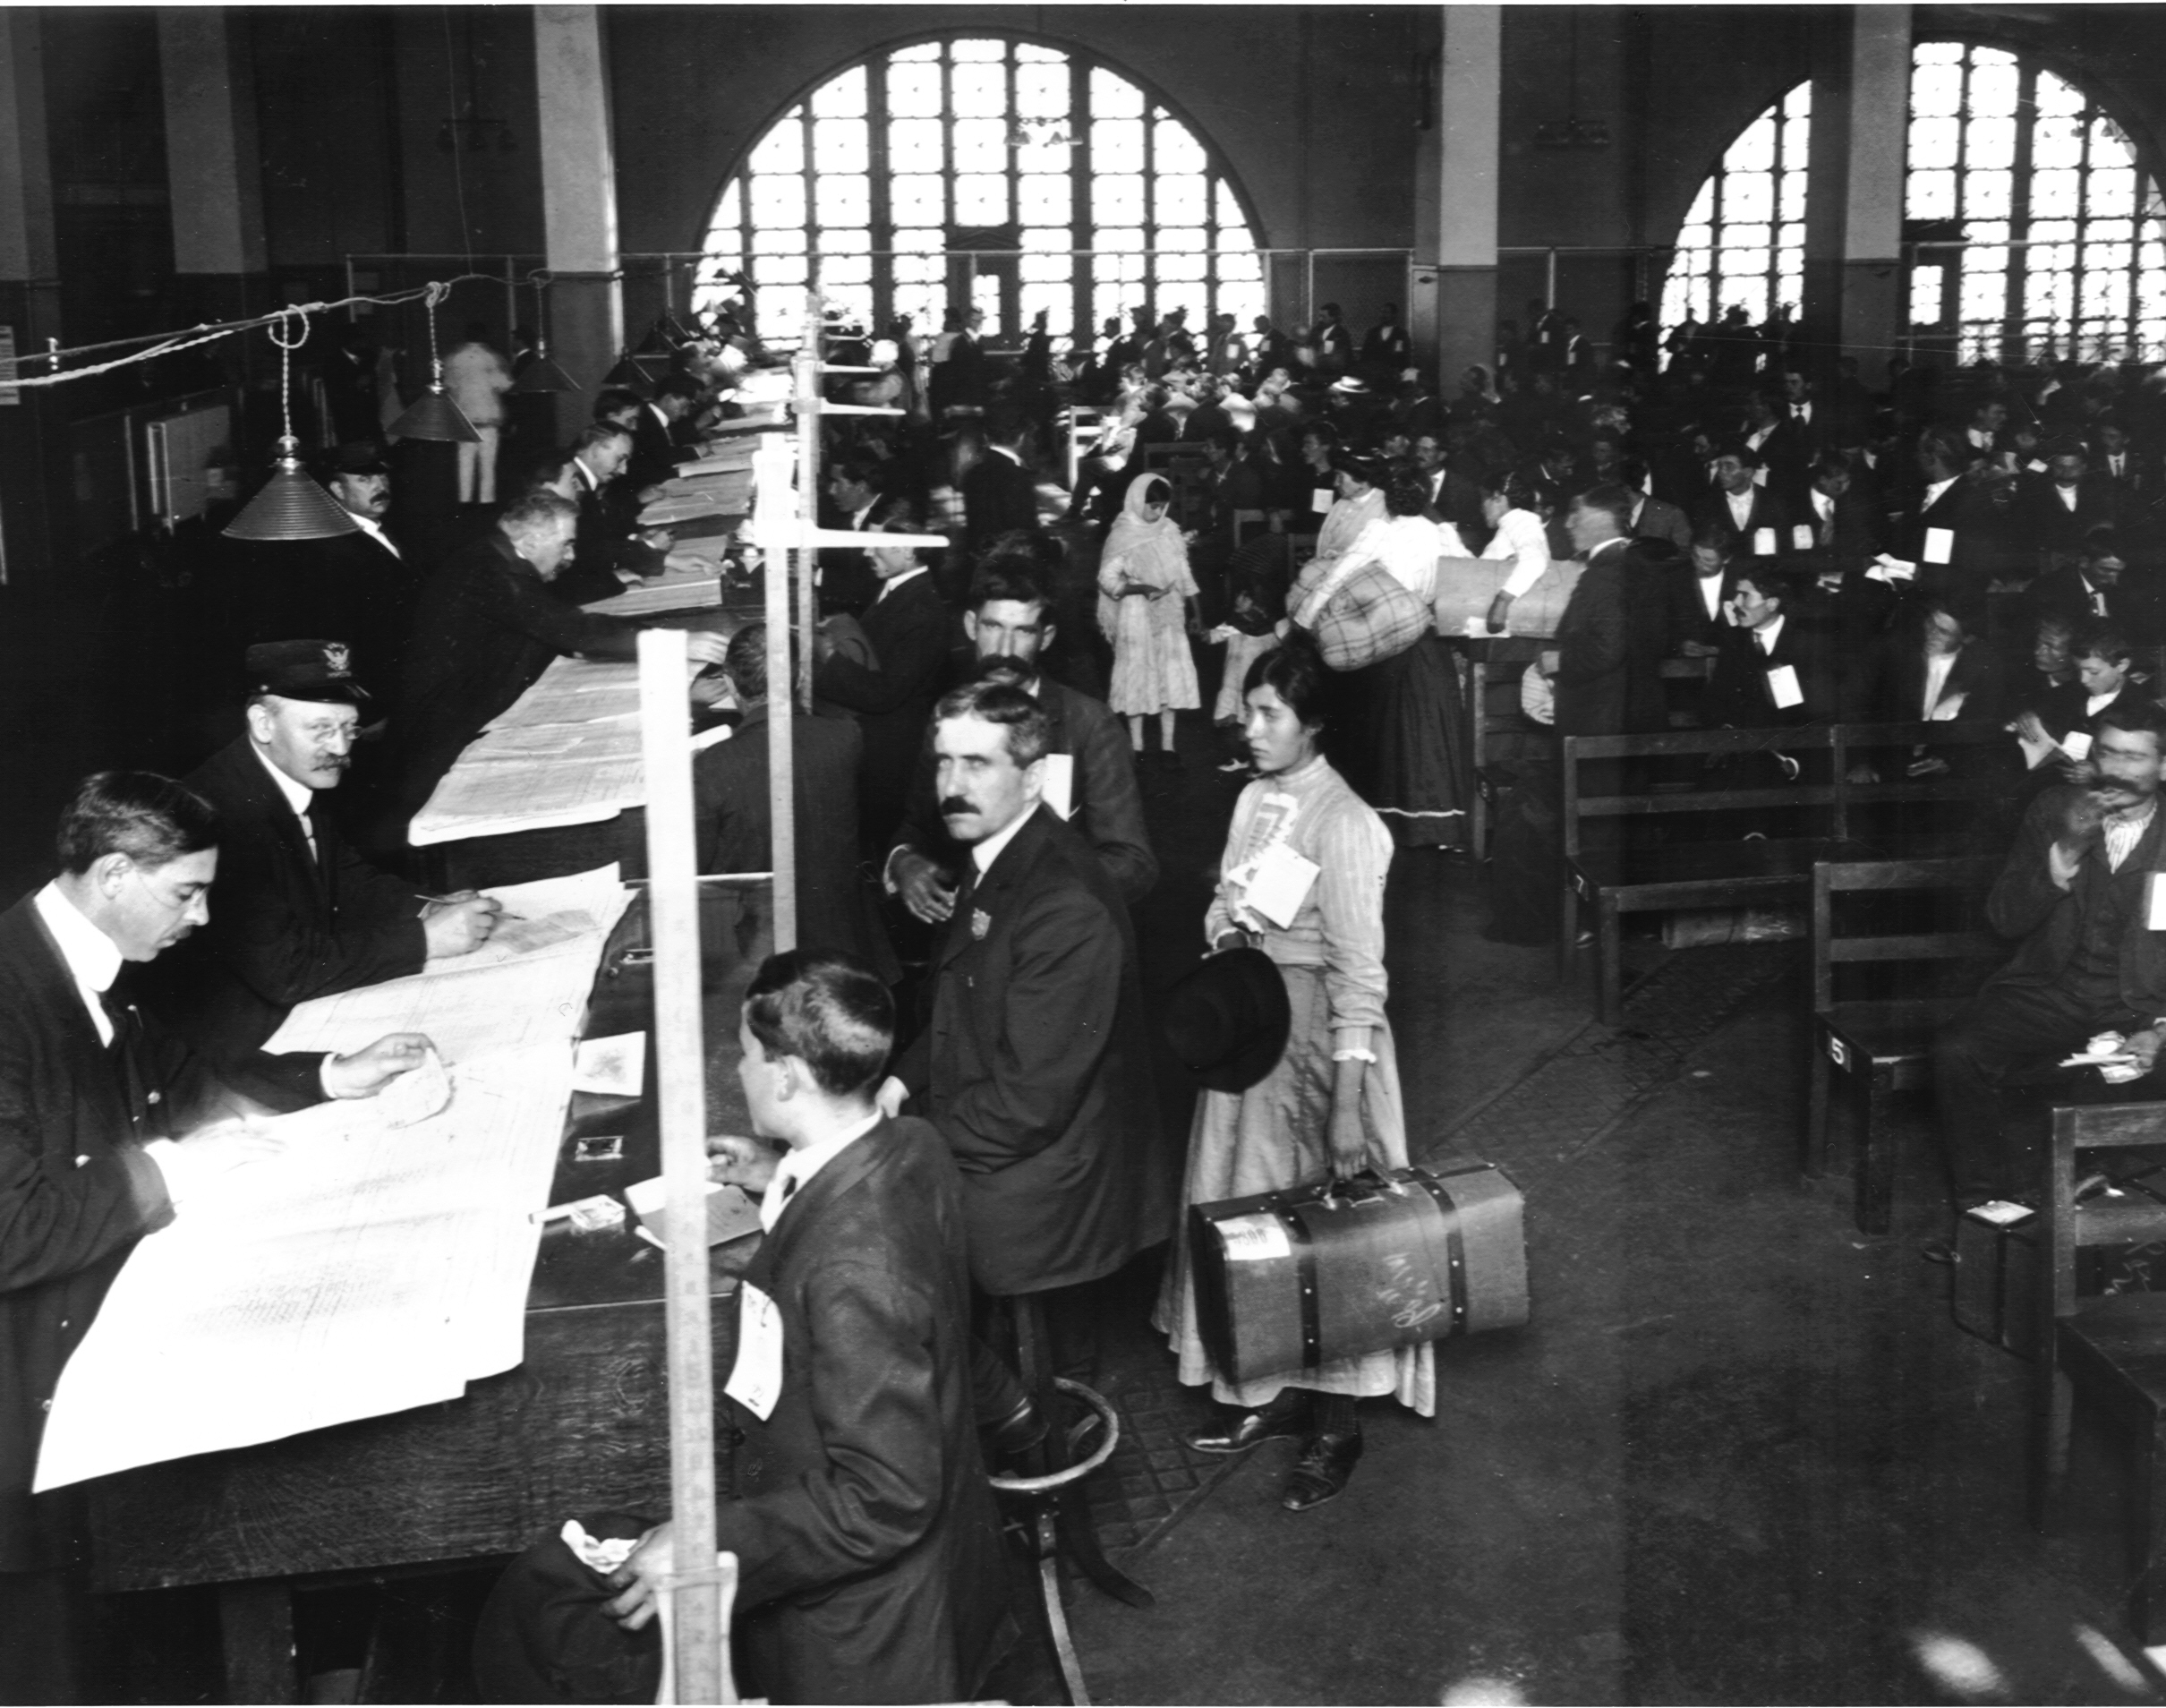 an overview of the korean immigrant experience in america from 1903 to 1924 Korean american immigrants before the world war ii era, the smallest asian community to settle in the united states of america was the korean american community between 1903 and 1905, immigration records show some seven thousand koreans migrated to hawaii.